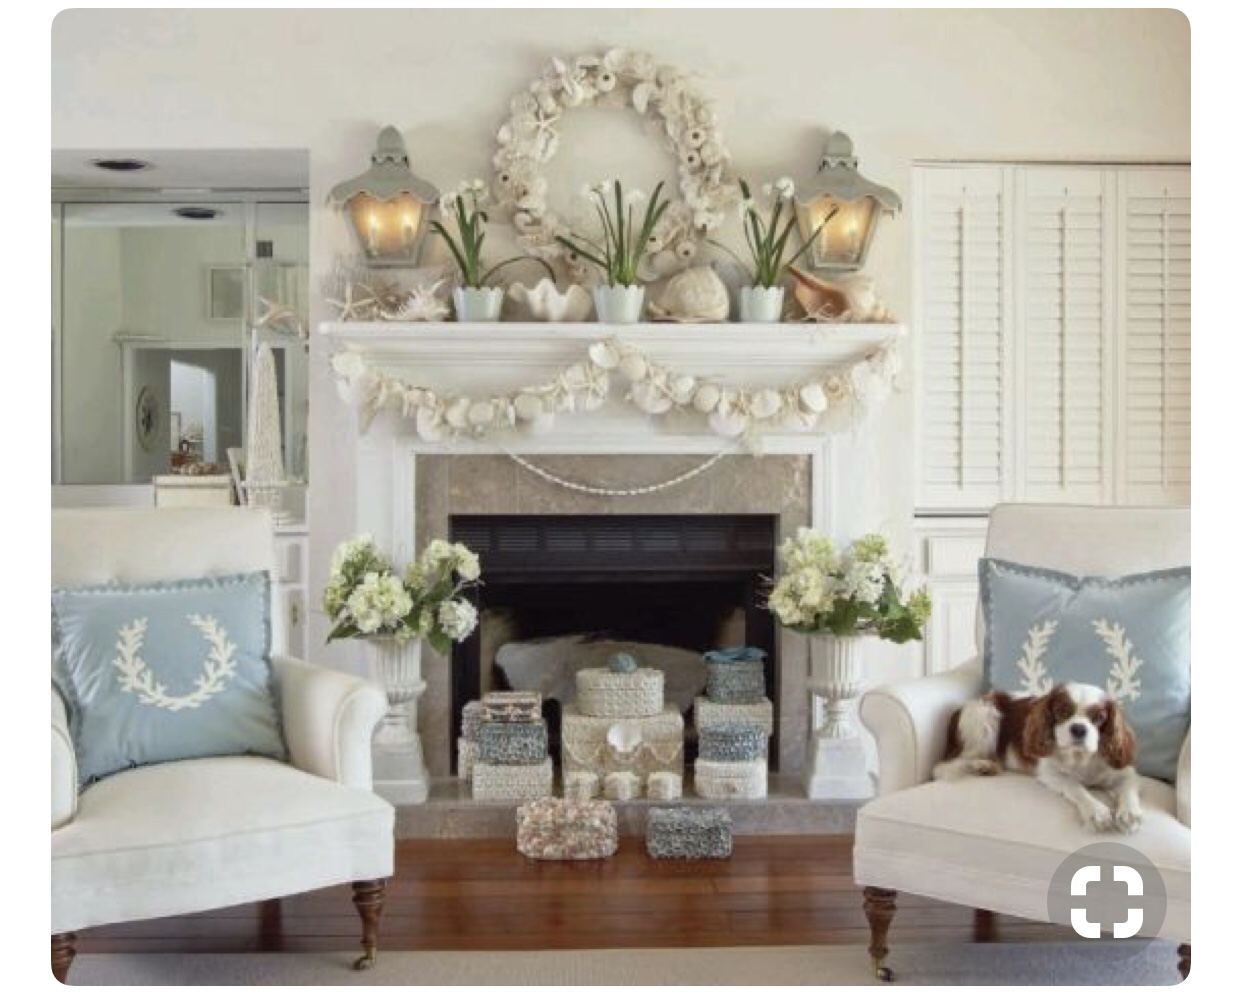 i have a beautiful pinterest board called coastal christmas decor that i have kept for years here is an image i have always loved and it has served as